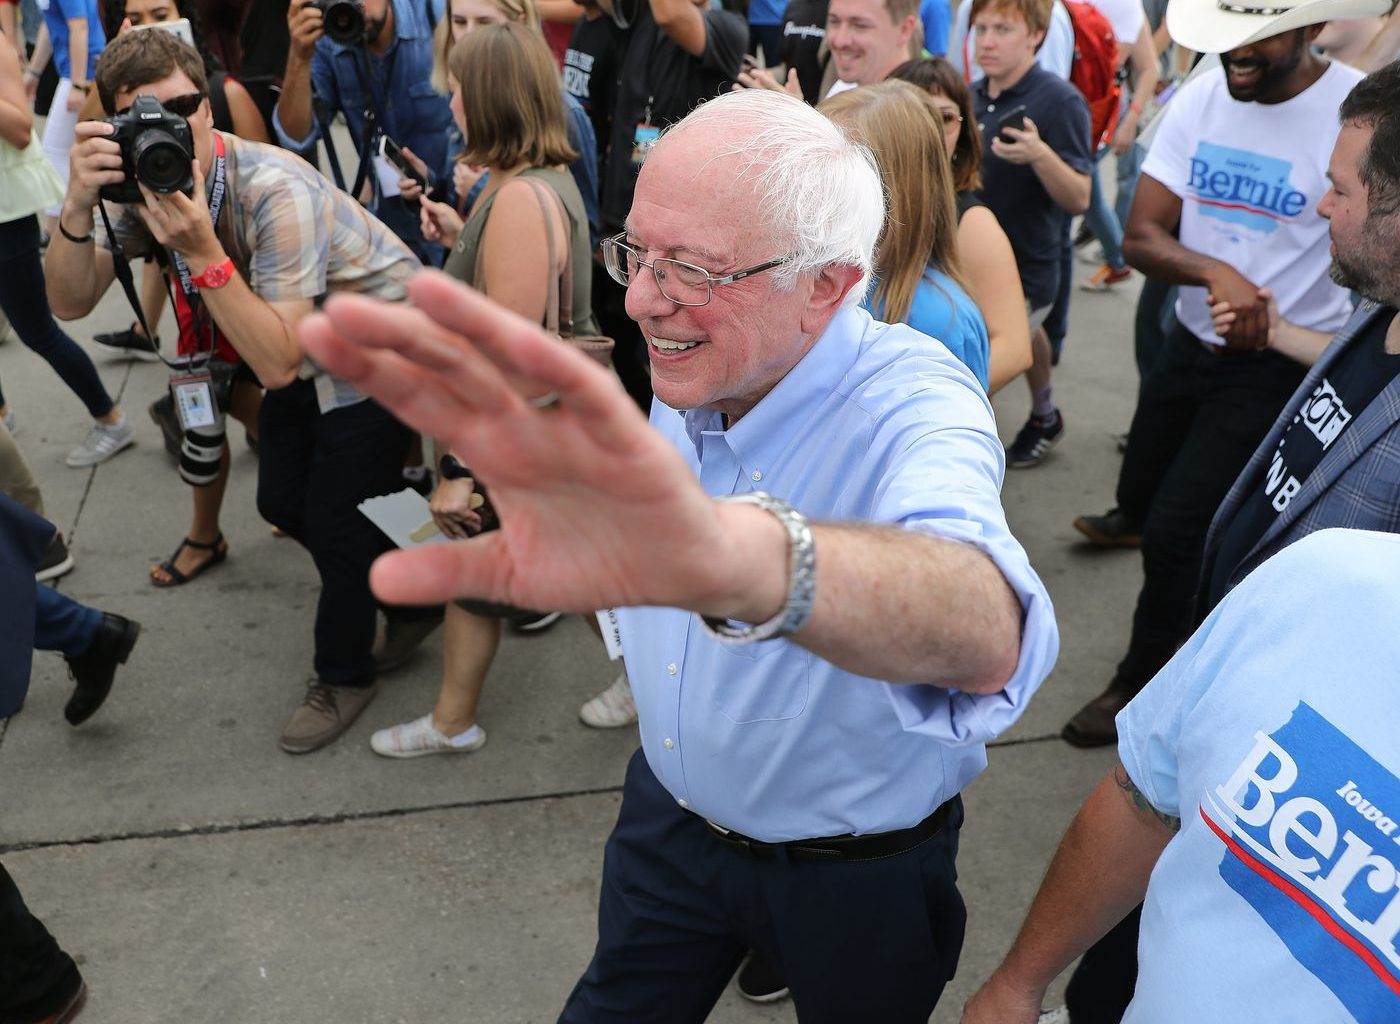 Harvard Study Confirms Bernie Sanders Was Right Media Blackout Badly Hurt Campaign